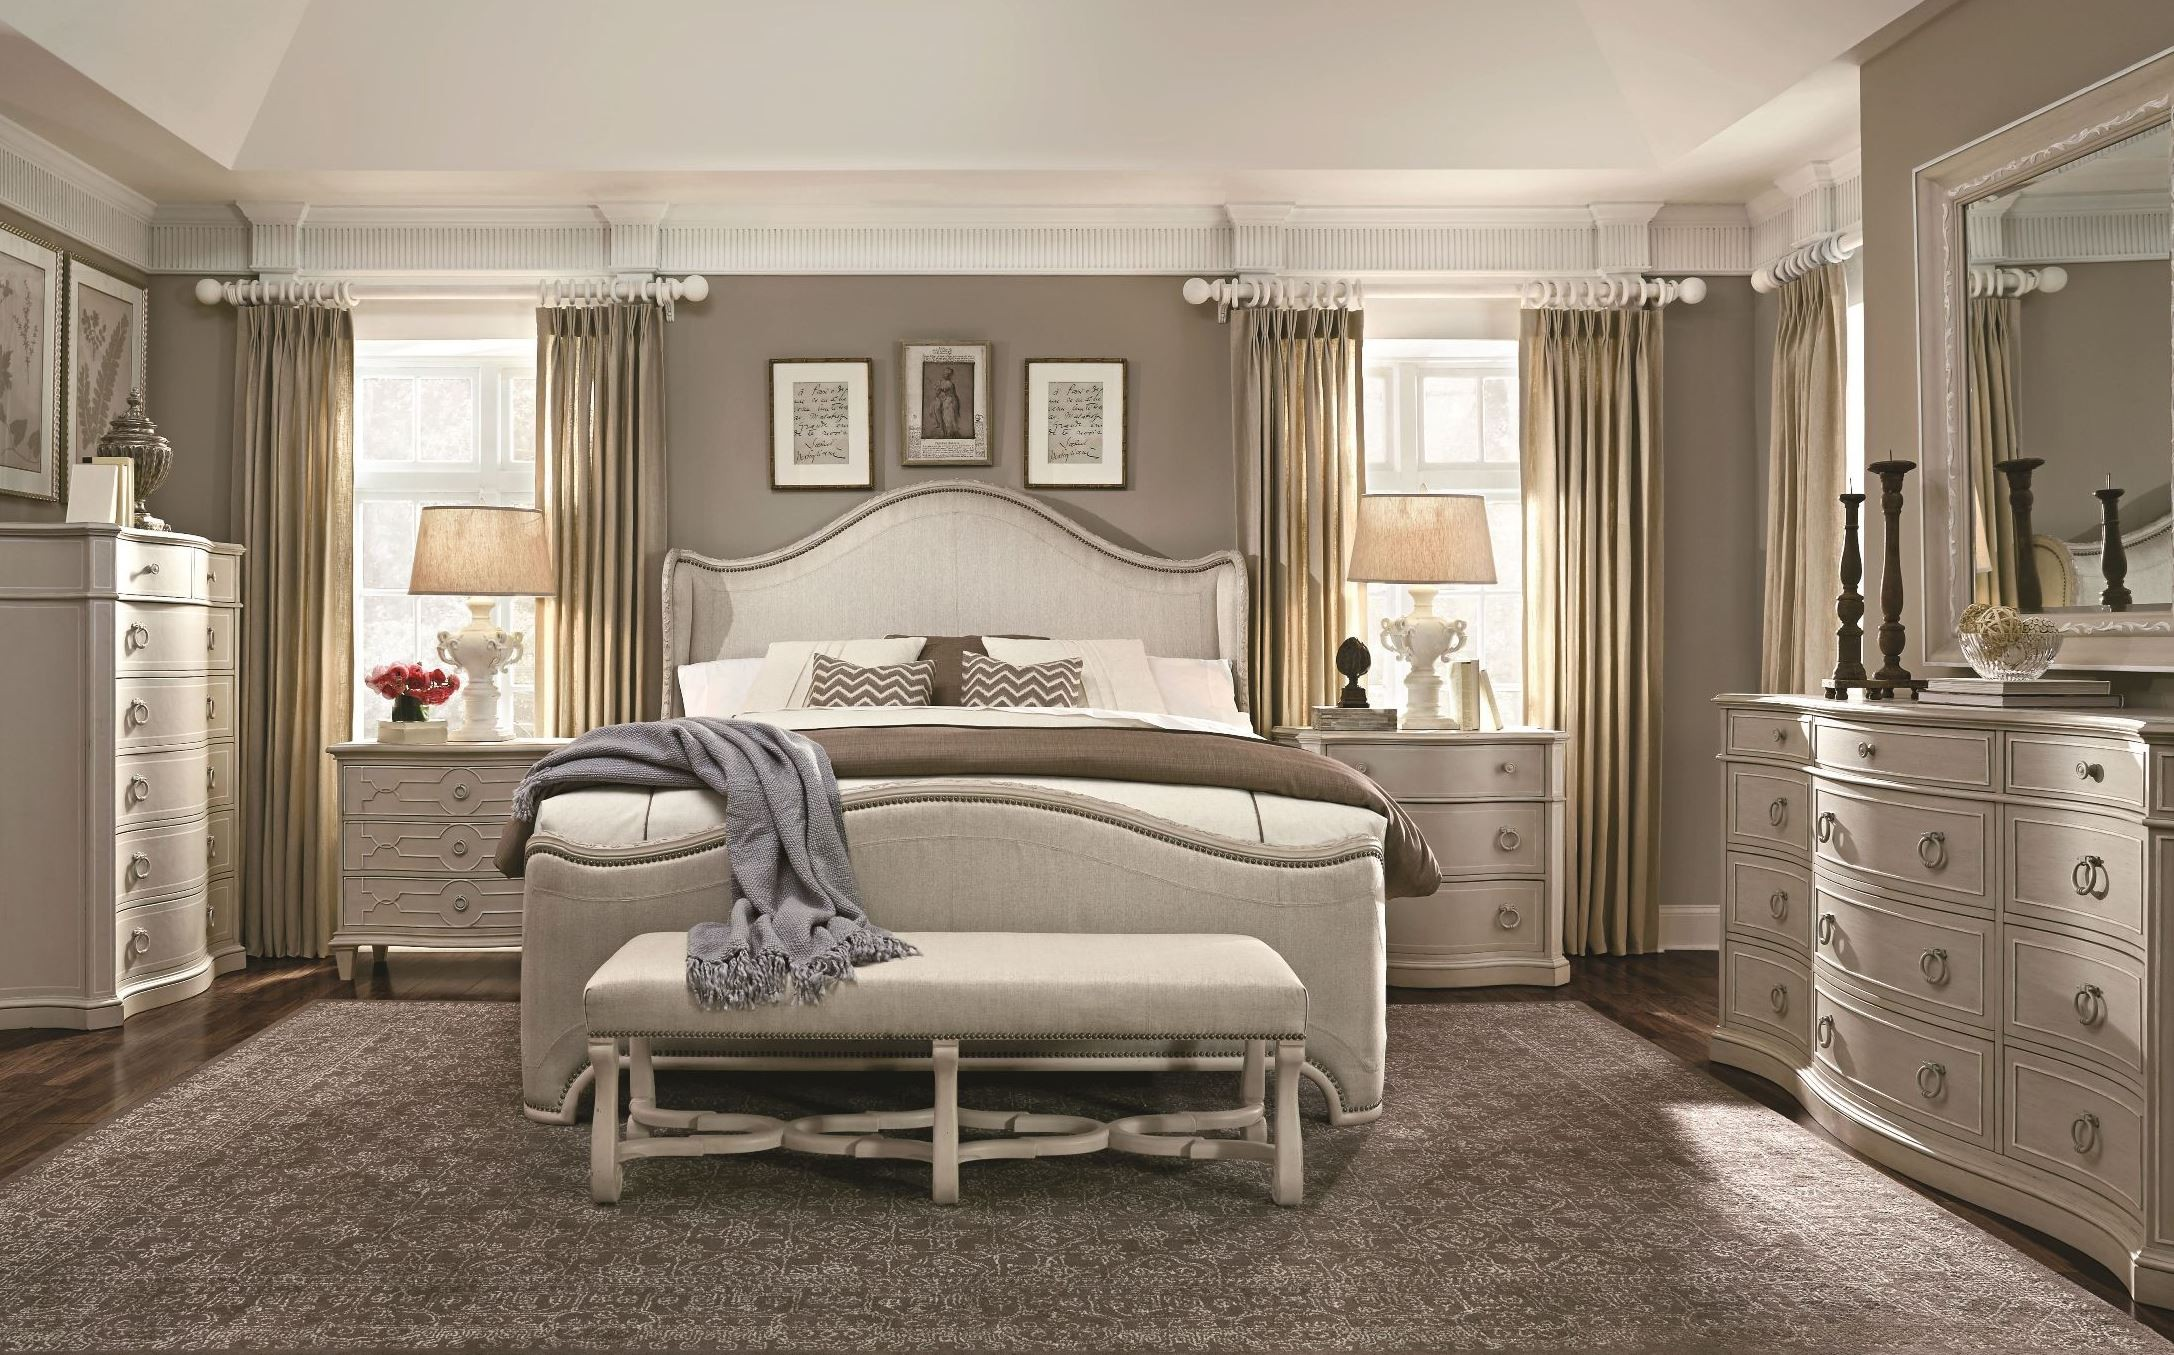 Chateaux Grey Upholstered Shelter Bedroom Set From Art